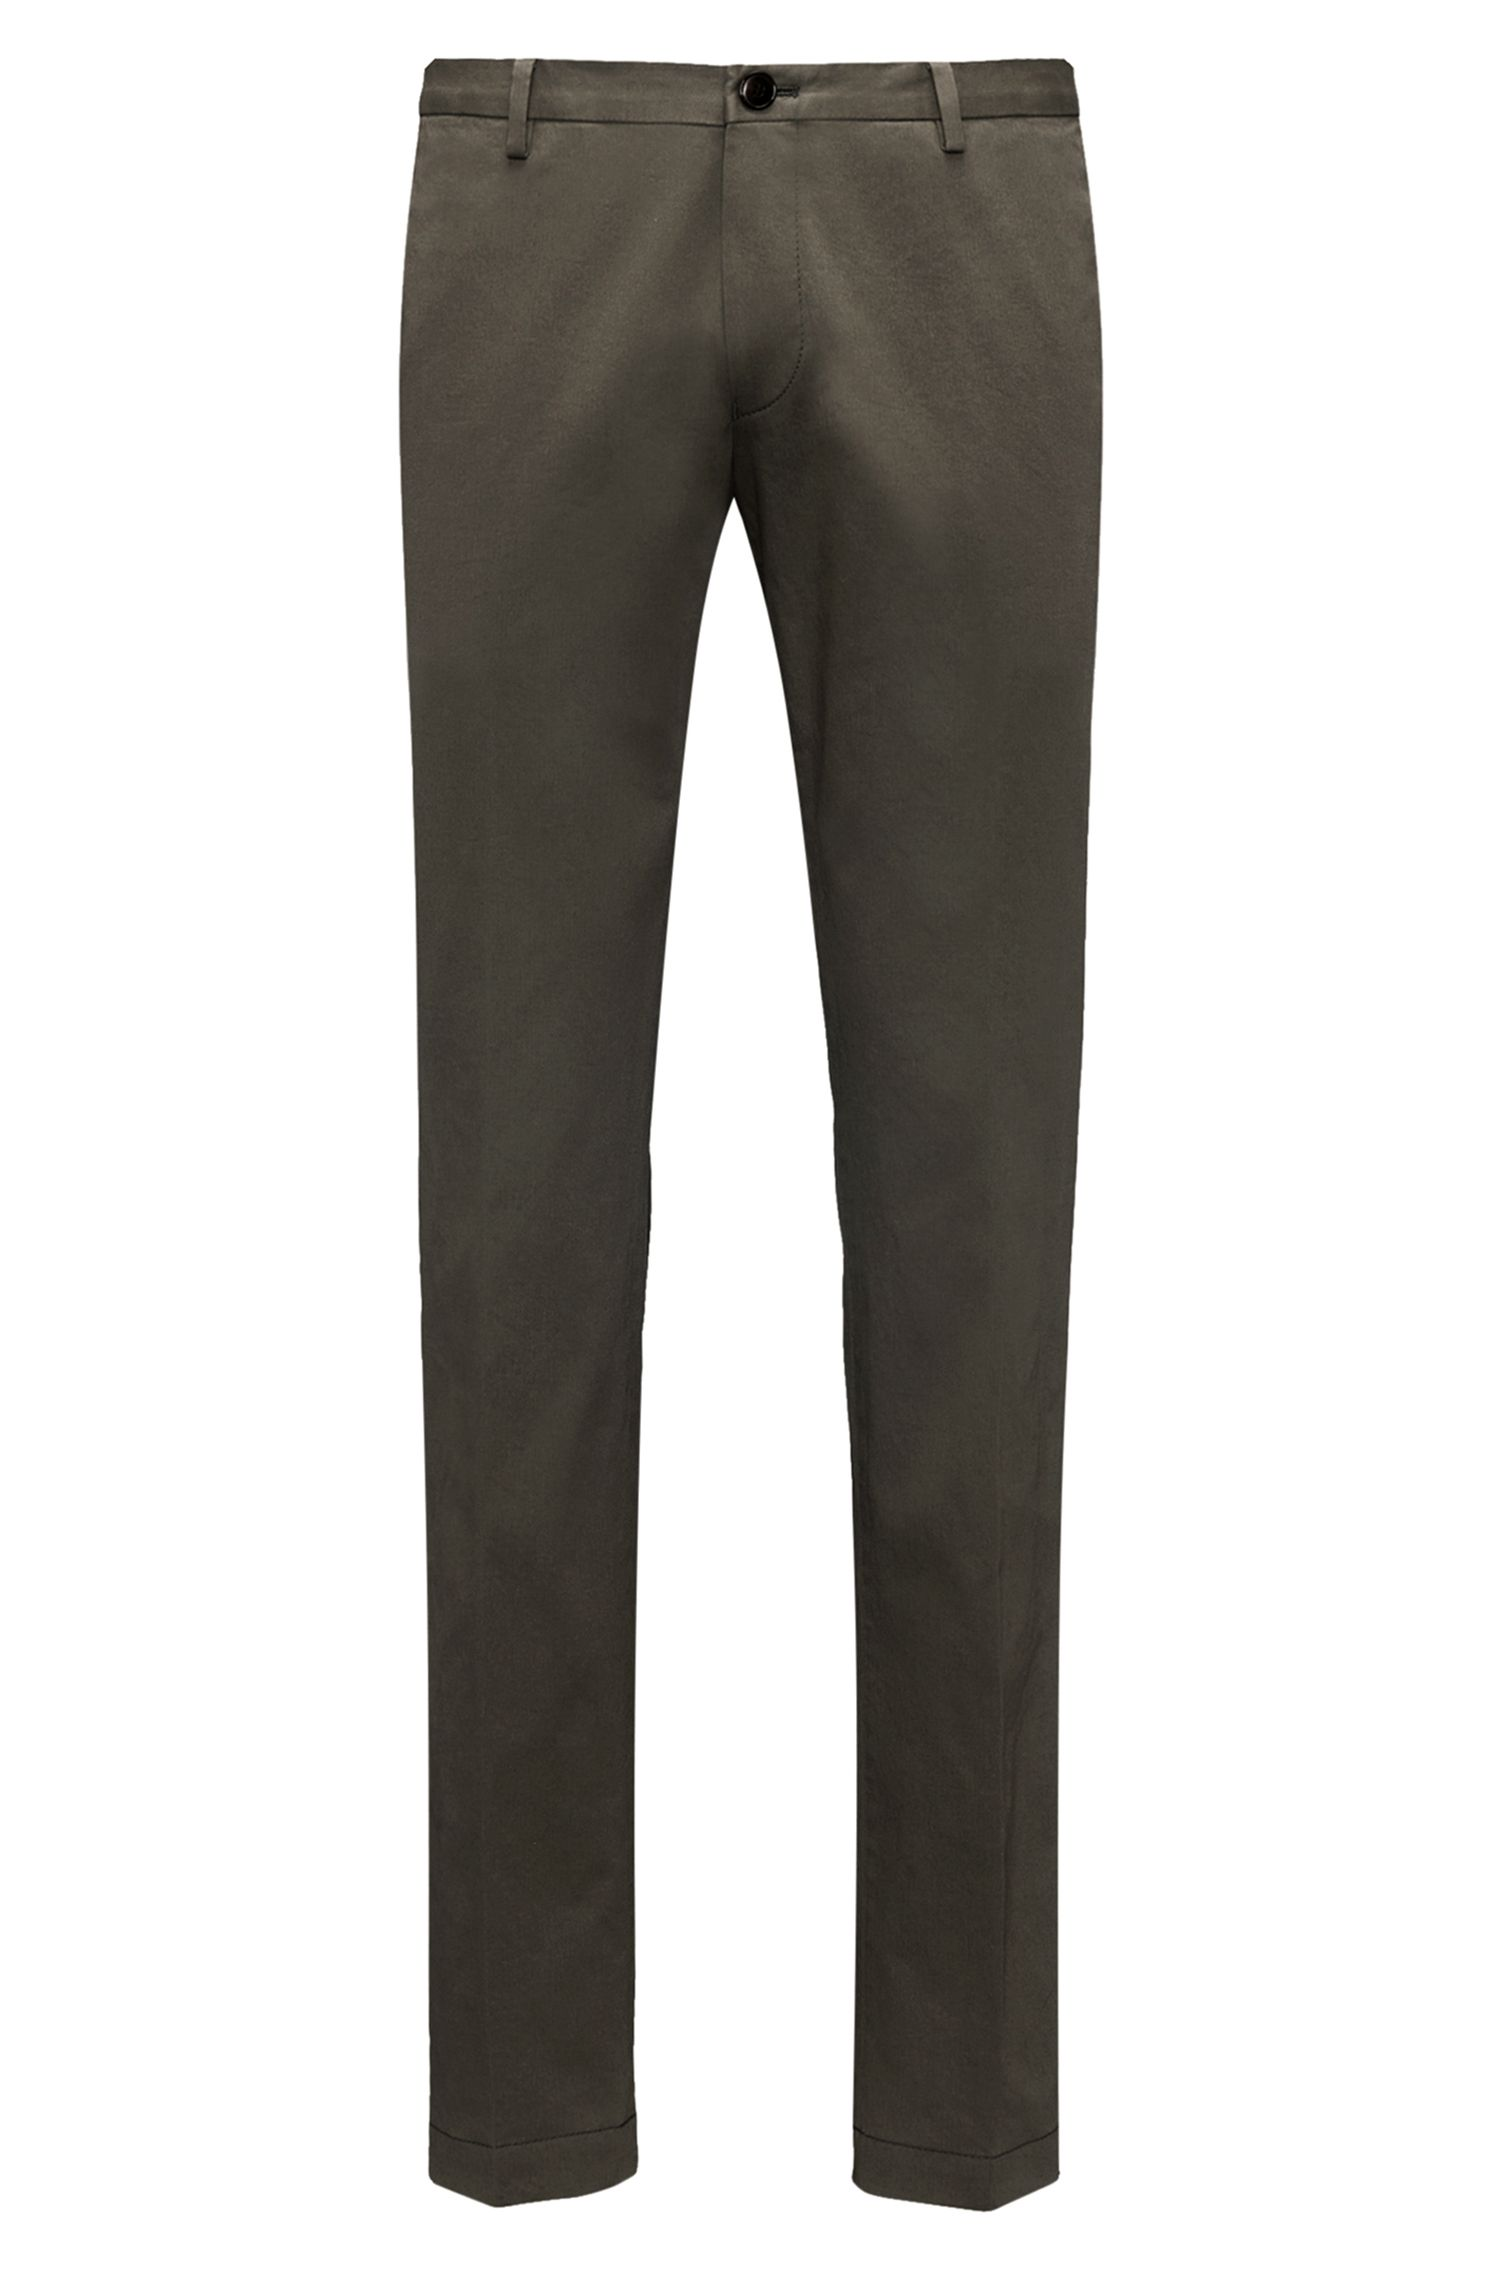 Slim-fit trousers in soft-washed stretch cotton